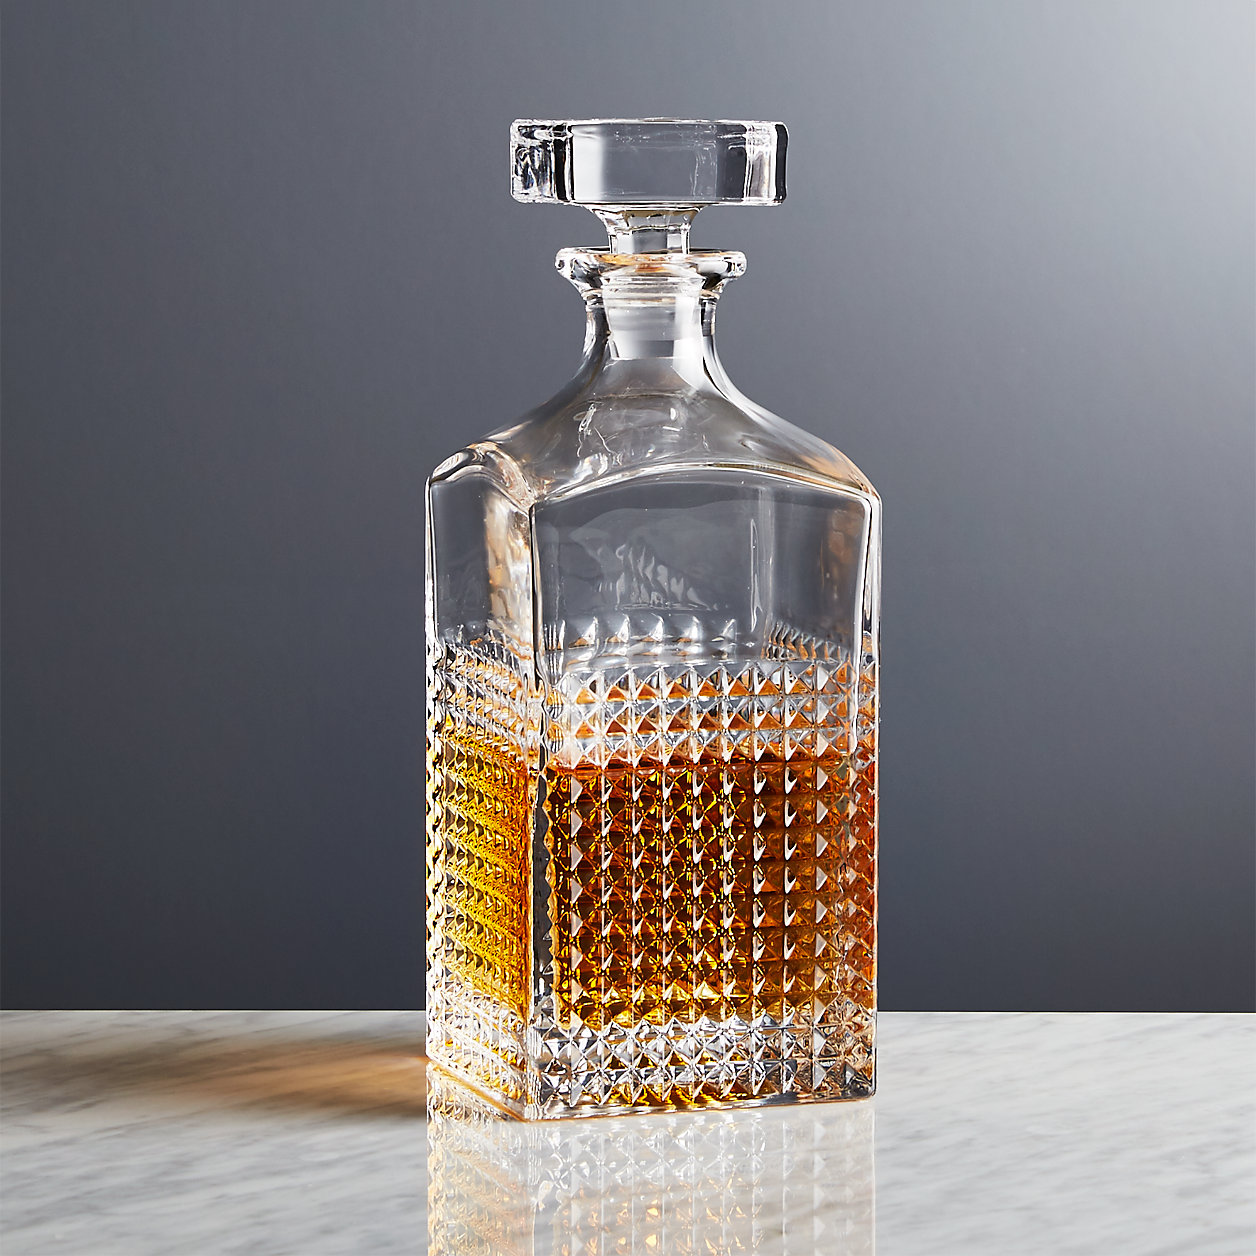 Decanter filled with whiskey